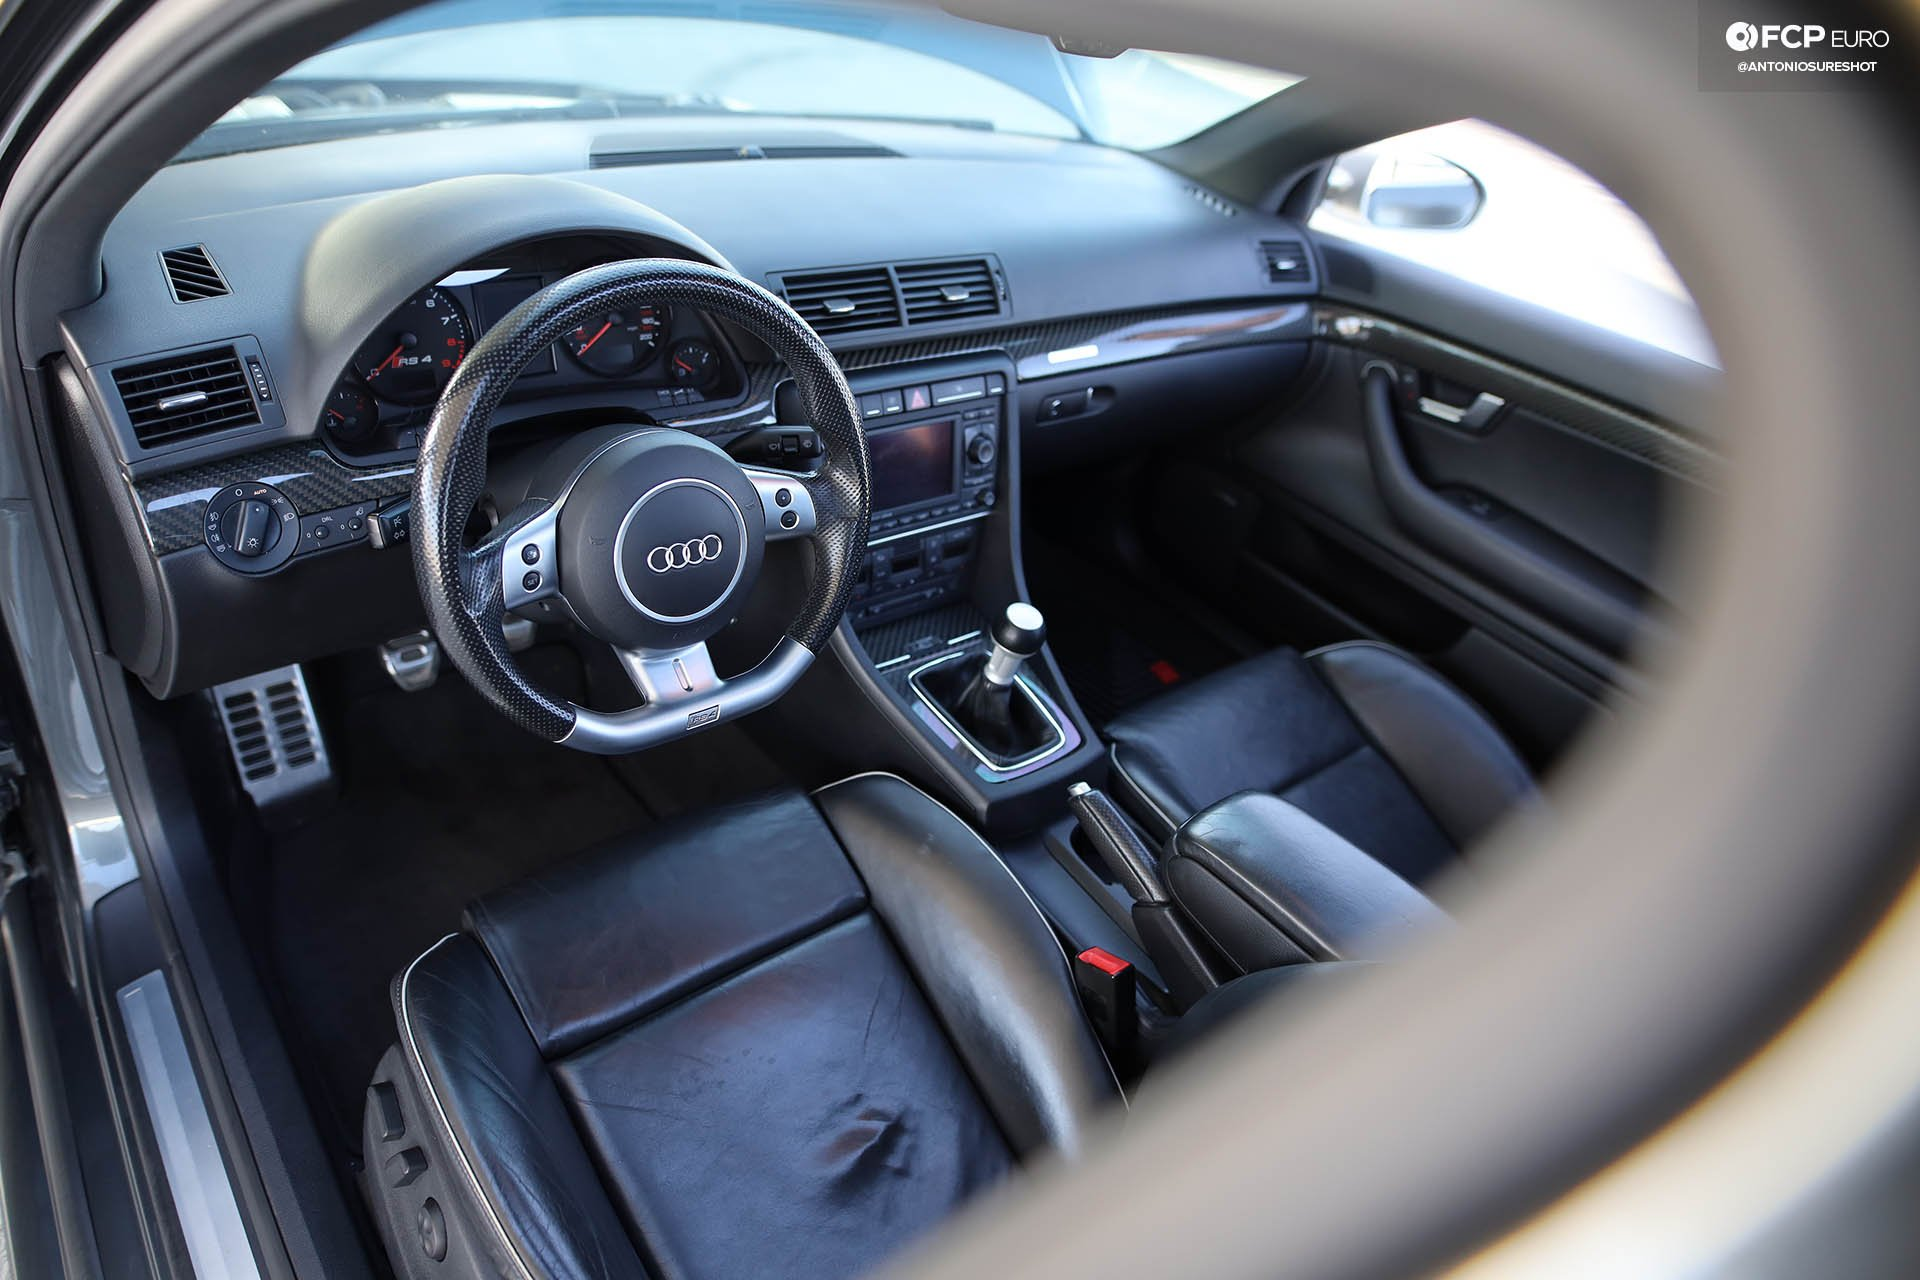 B7 Audi RS4 interior shot